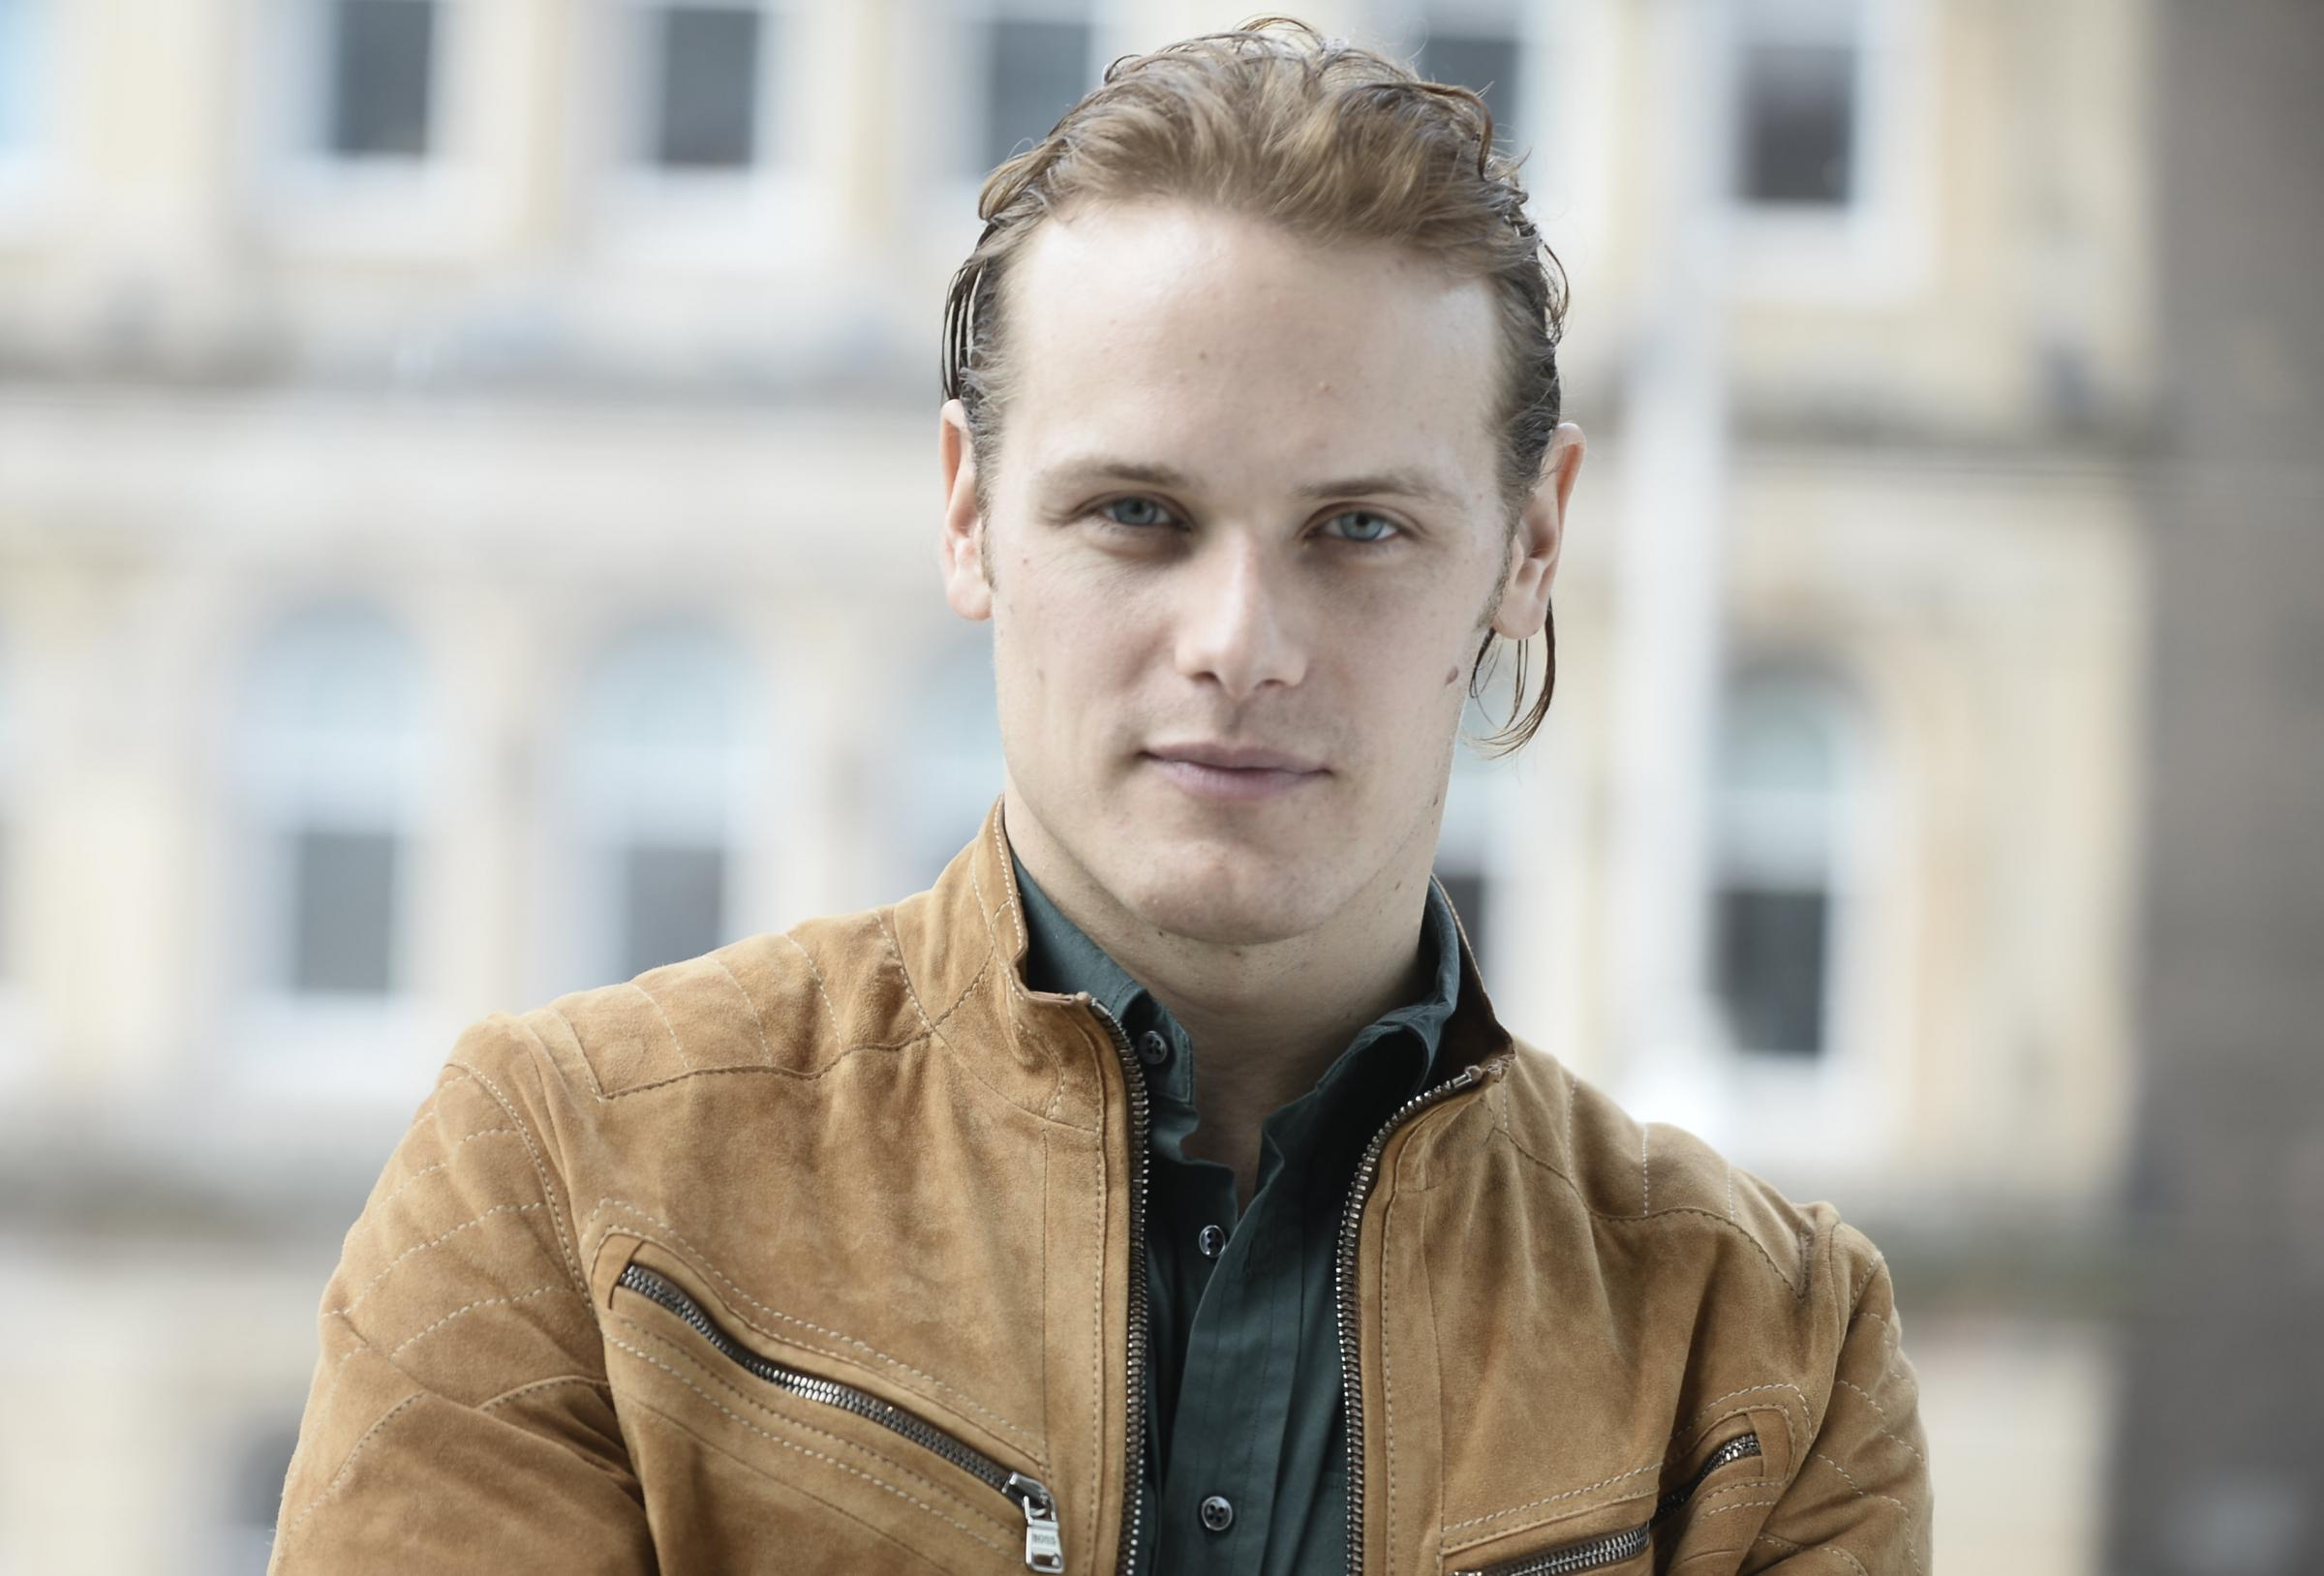 Video: Sam Heughan humbled by Glasgow hospice workers and joy they bring